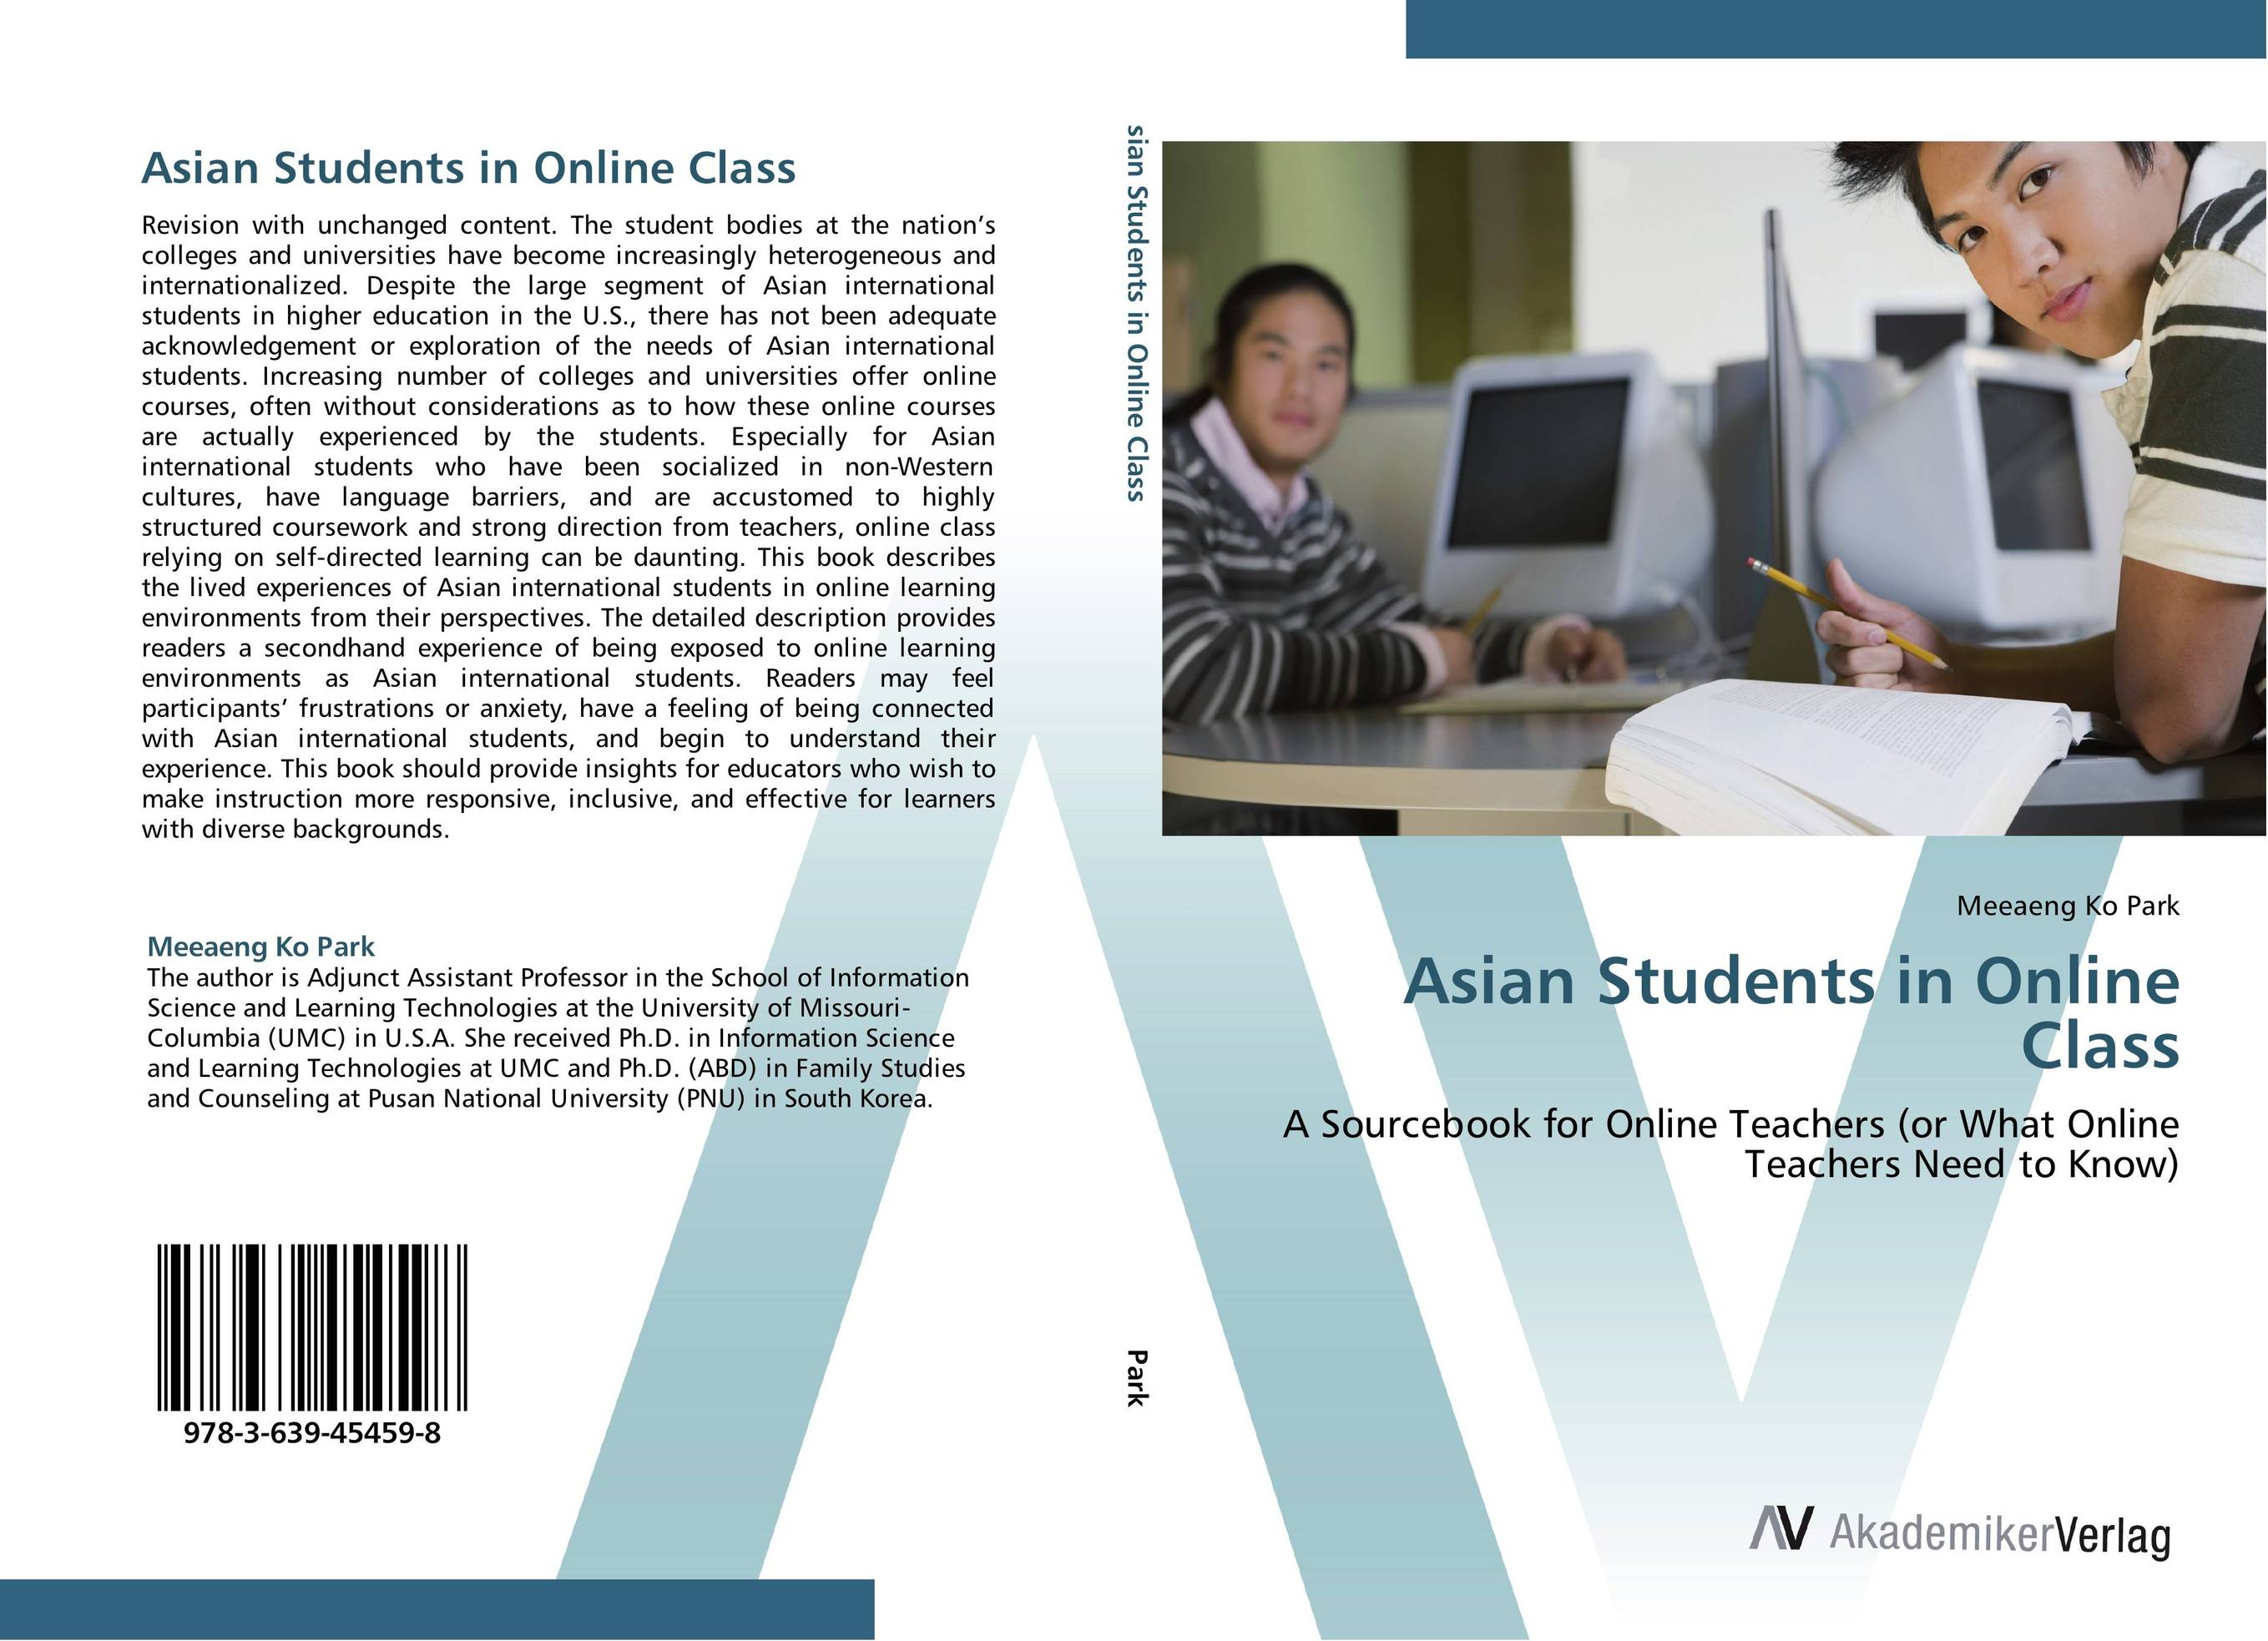 Asian Students in Online Class